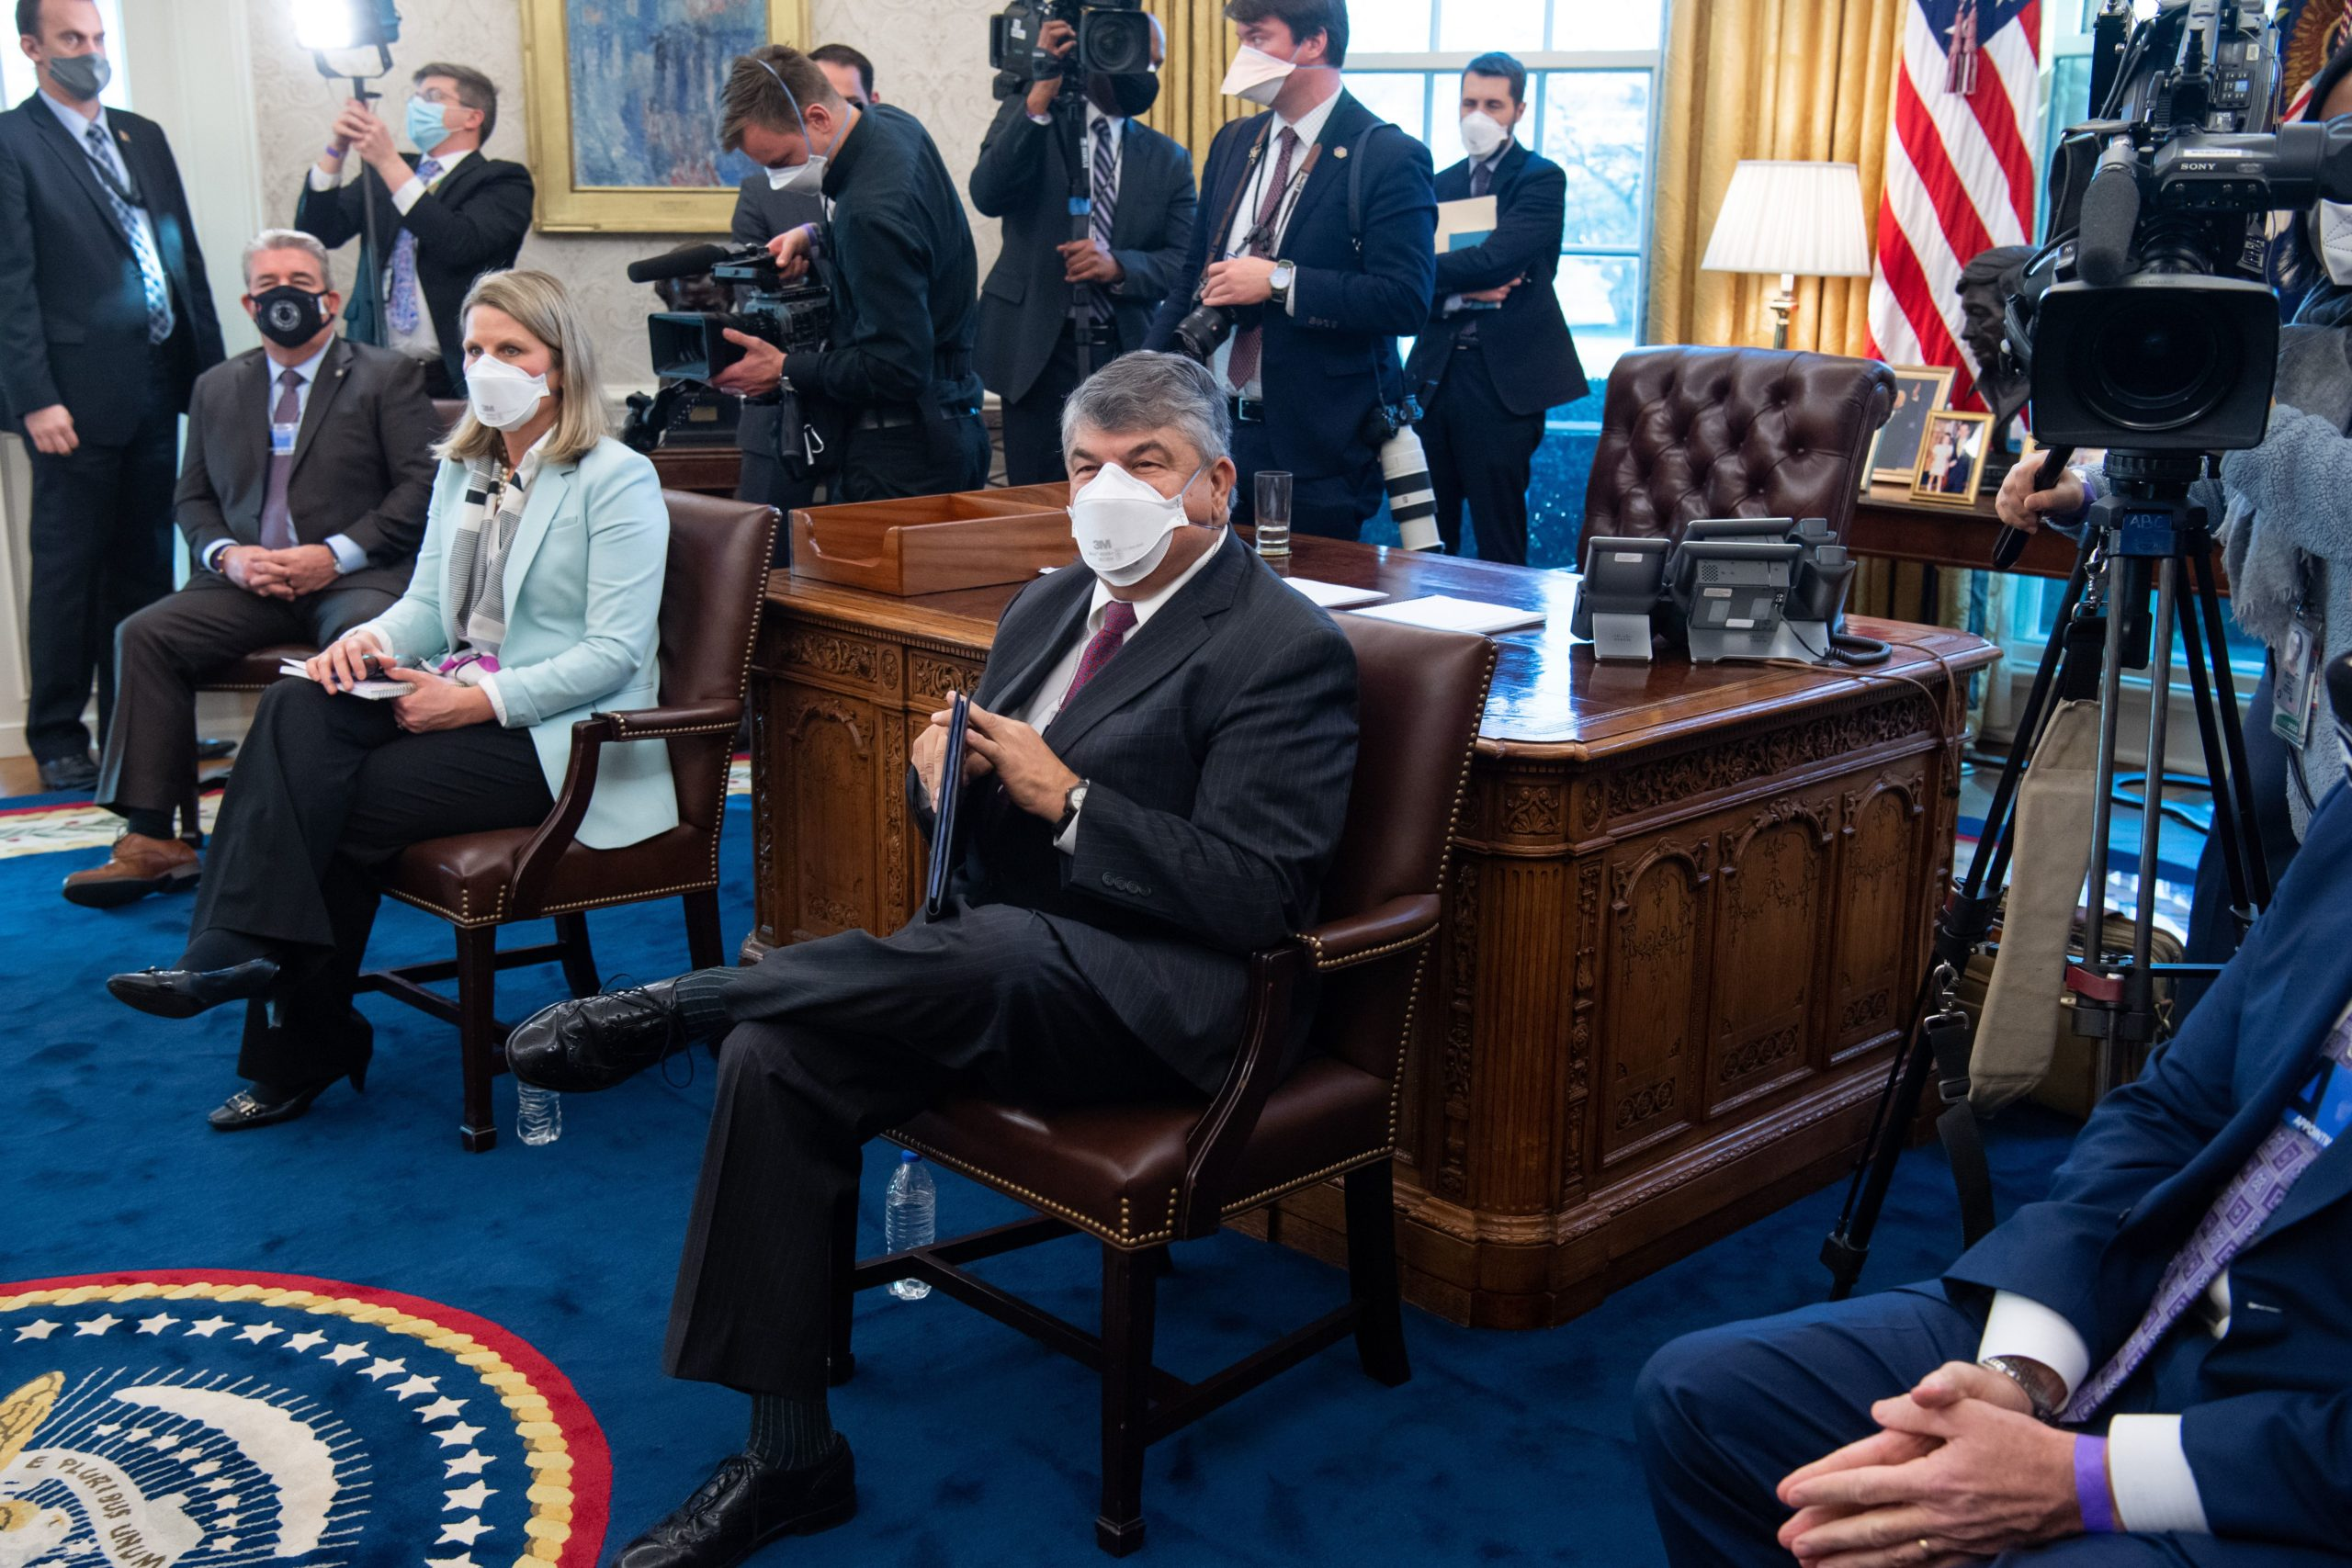 AFL-CIO President Richard Trumka attends a meeting with President Joe Biden and other labor leaders on Feb. 17. (Saul Loeb/AFP via Getty Images)